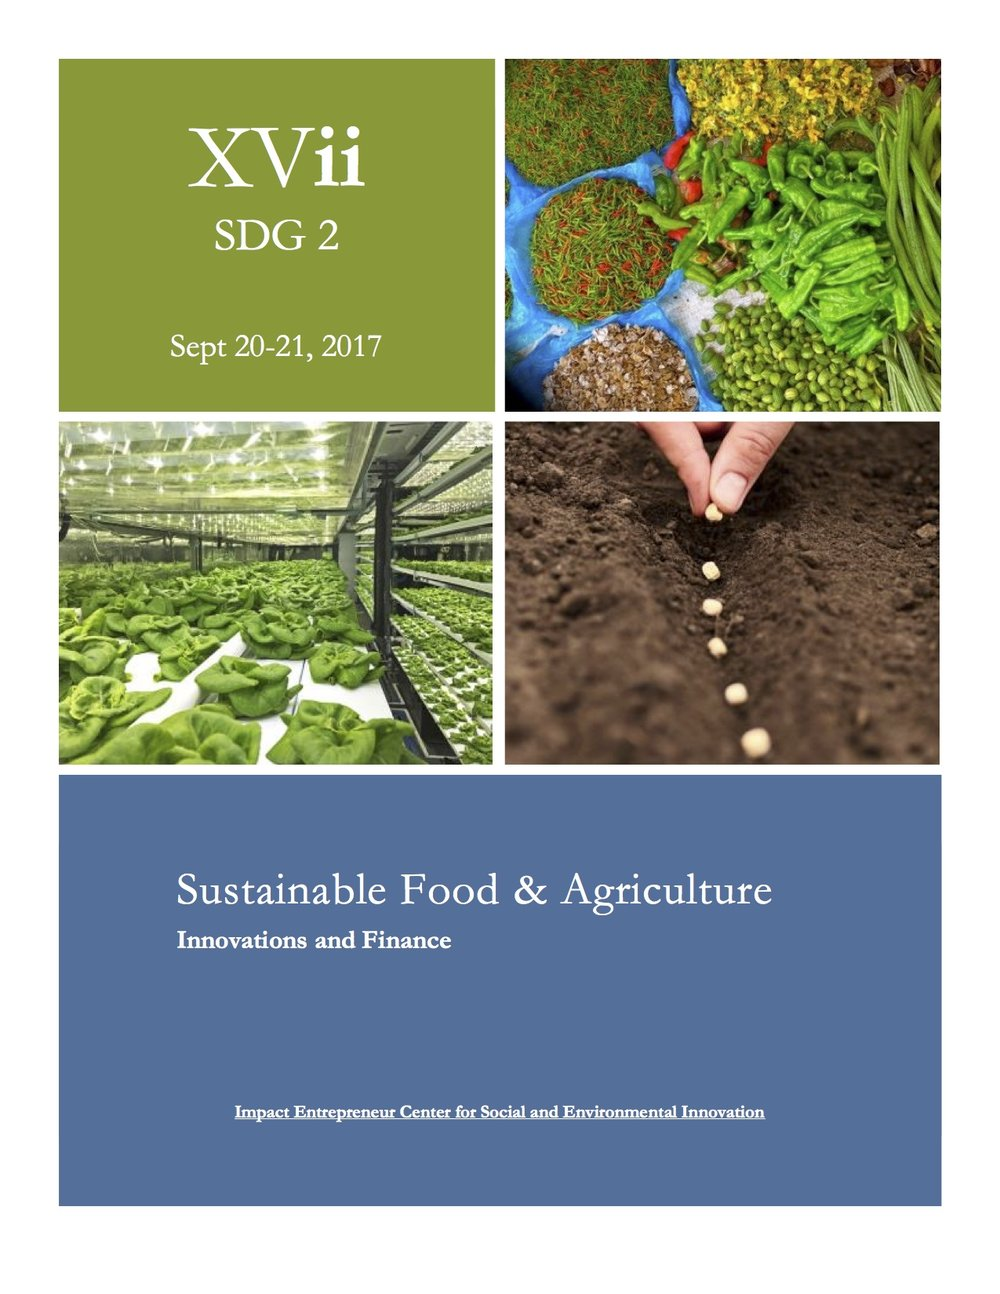 XVii-SDG 2 Summit and Design Workshop Agenda & Participants (dragged) 1.jpg